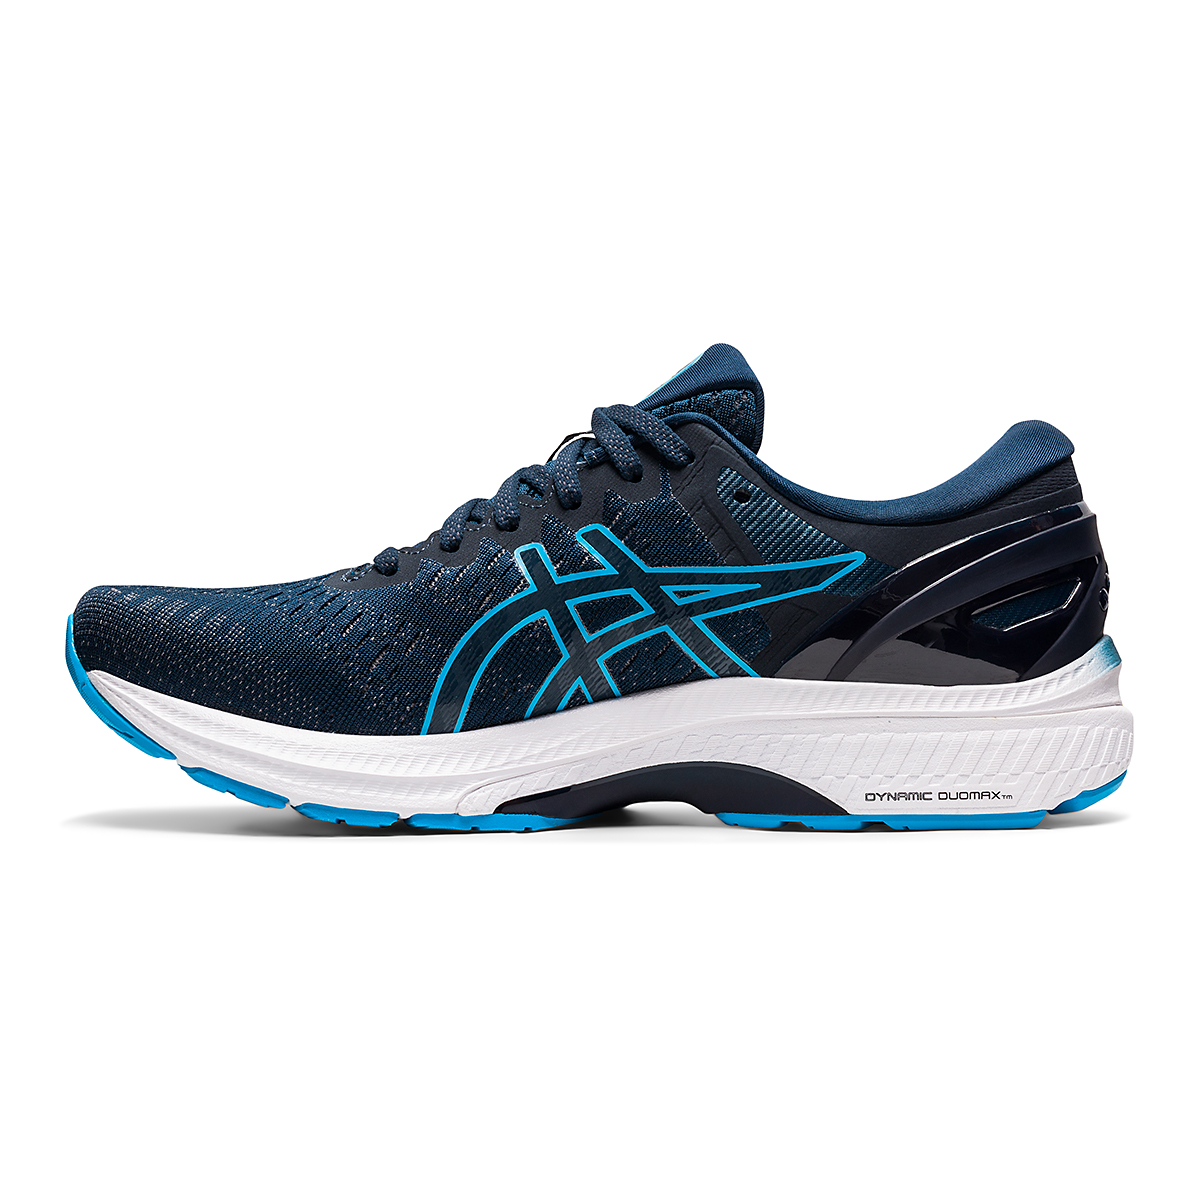 Men's Asics GEL-Kayano 27 Running Shoe - Color: French Blue/Dig - Size: 7.5 - Width: Regular, French Blue/Dig, large, image 2